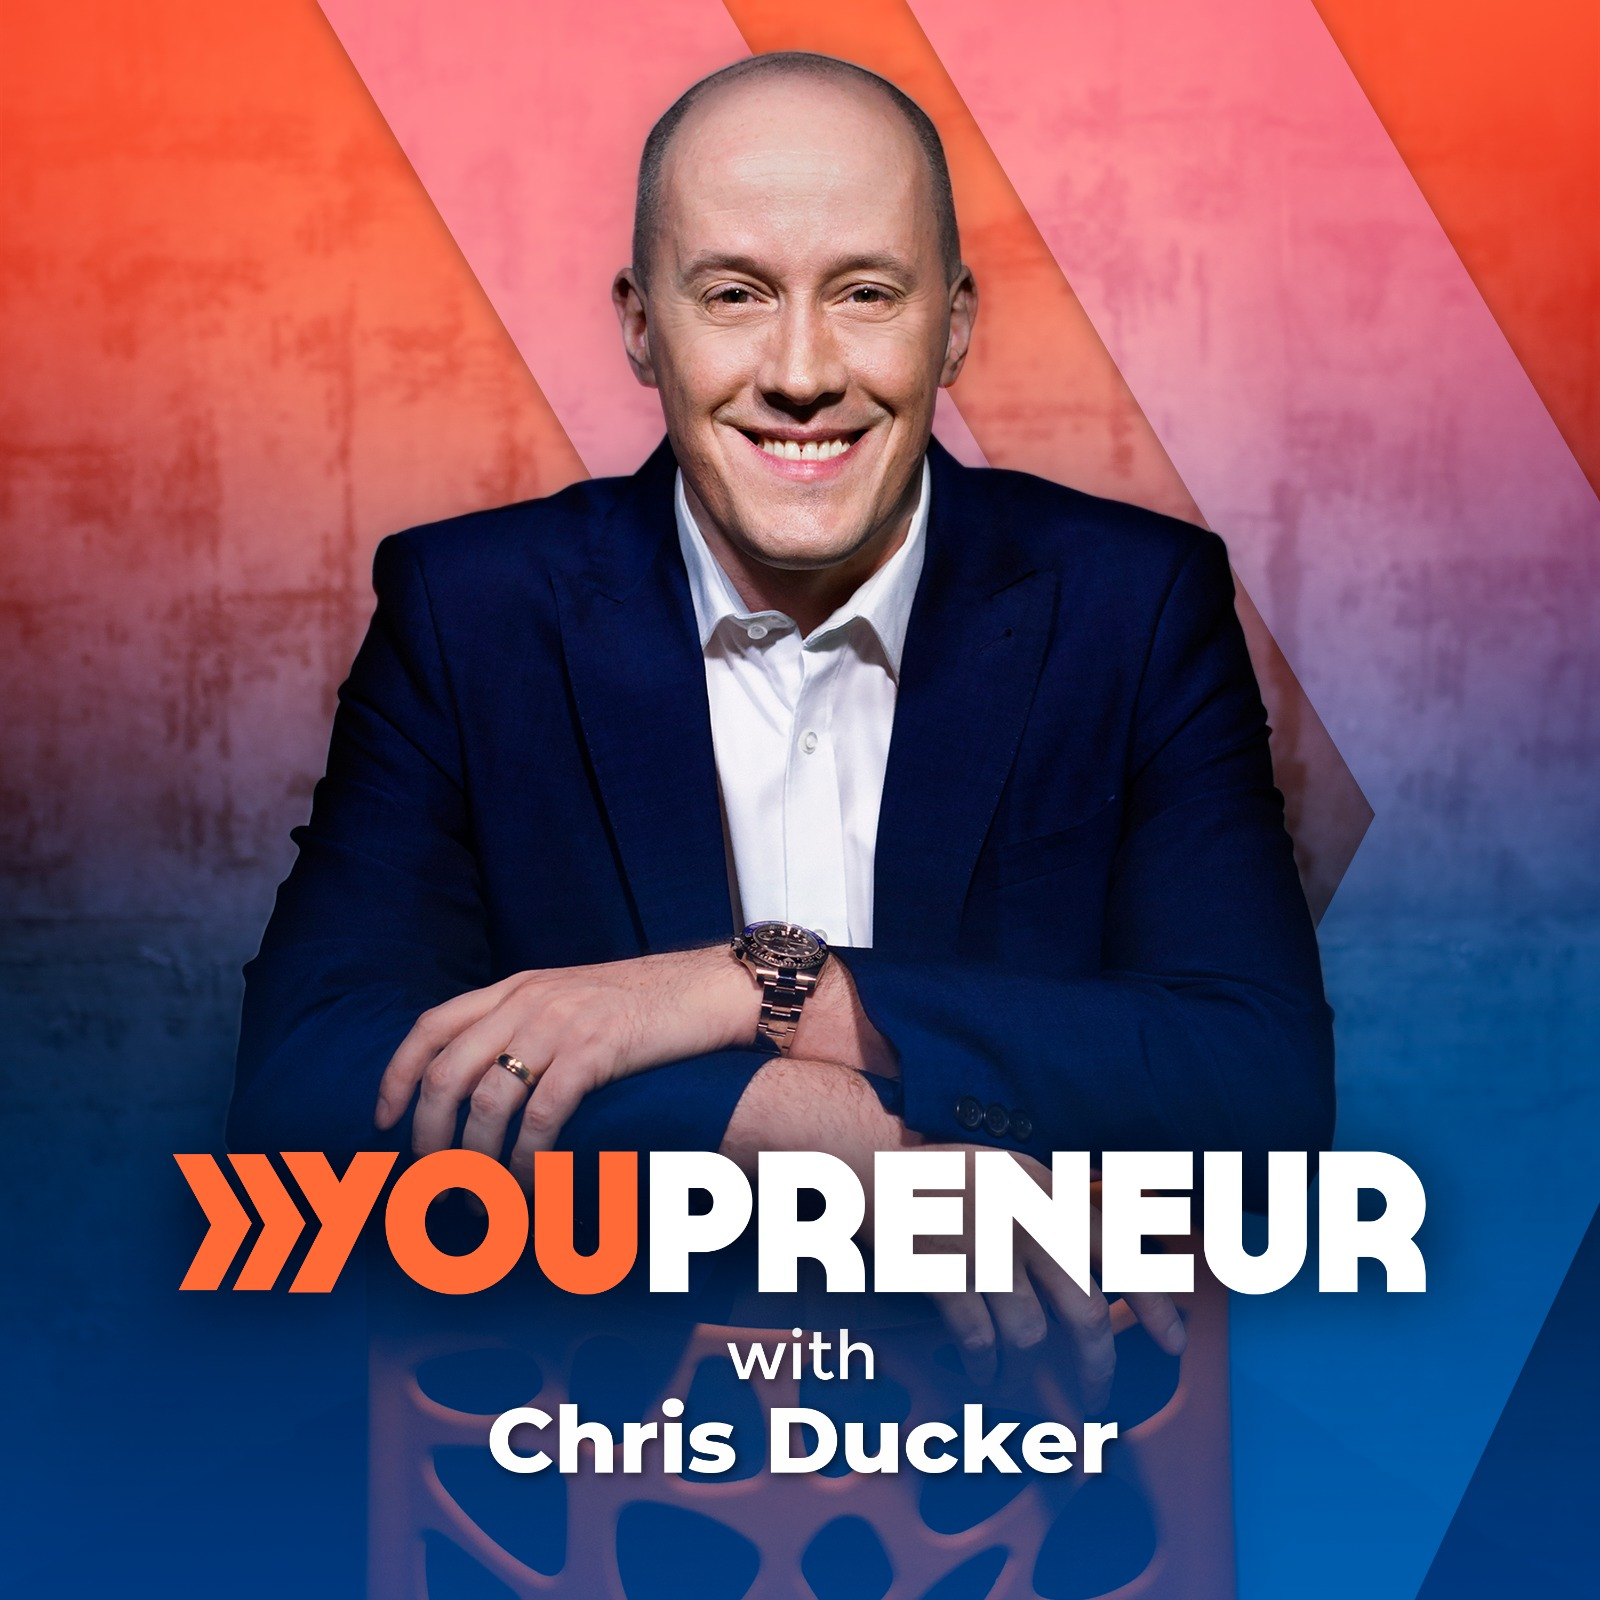 Artwork for podcast Youpreneur: The Profitable Personal Brand Expert Business!